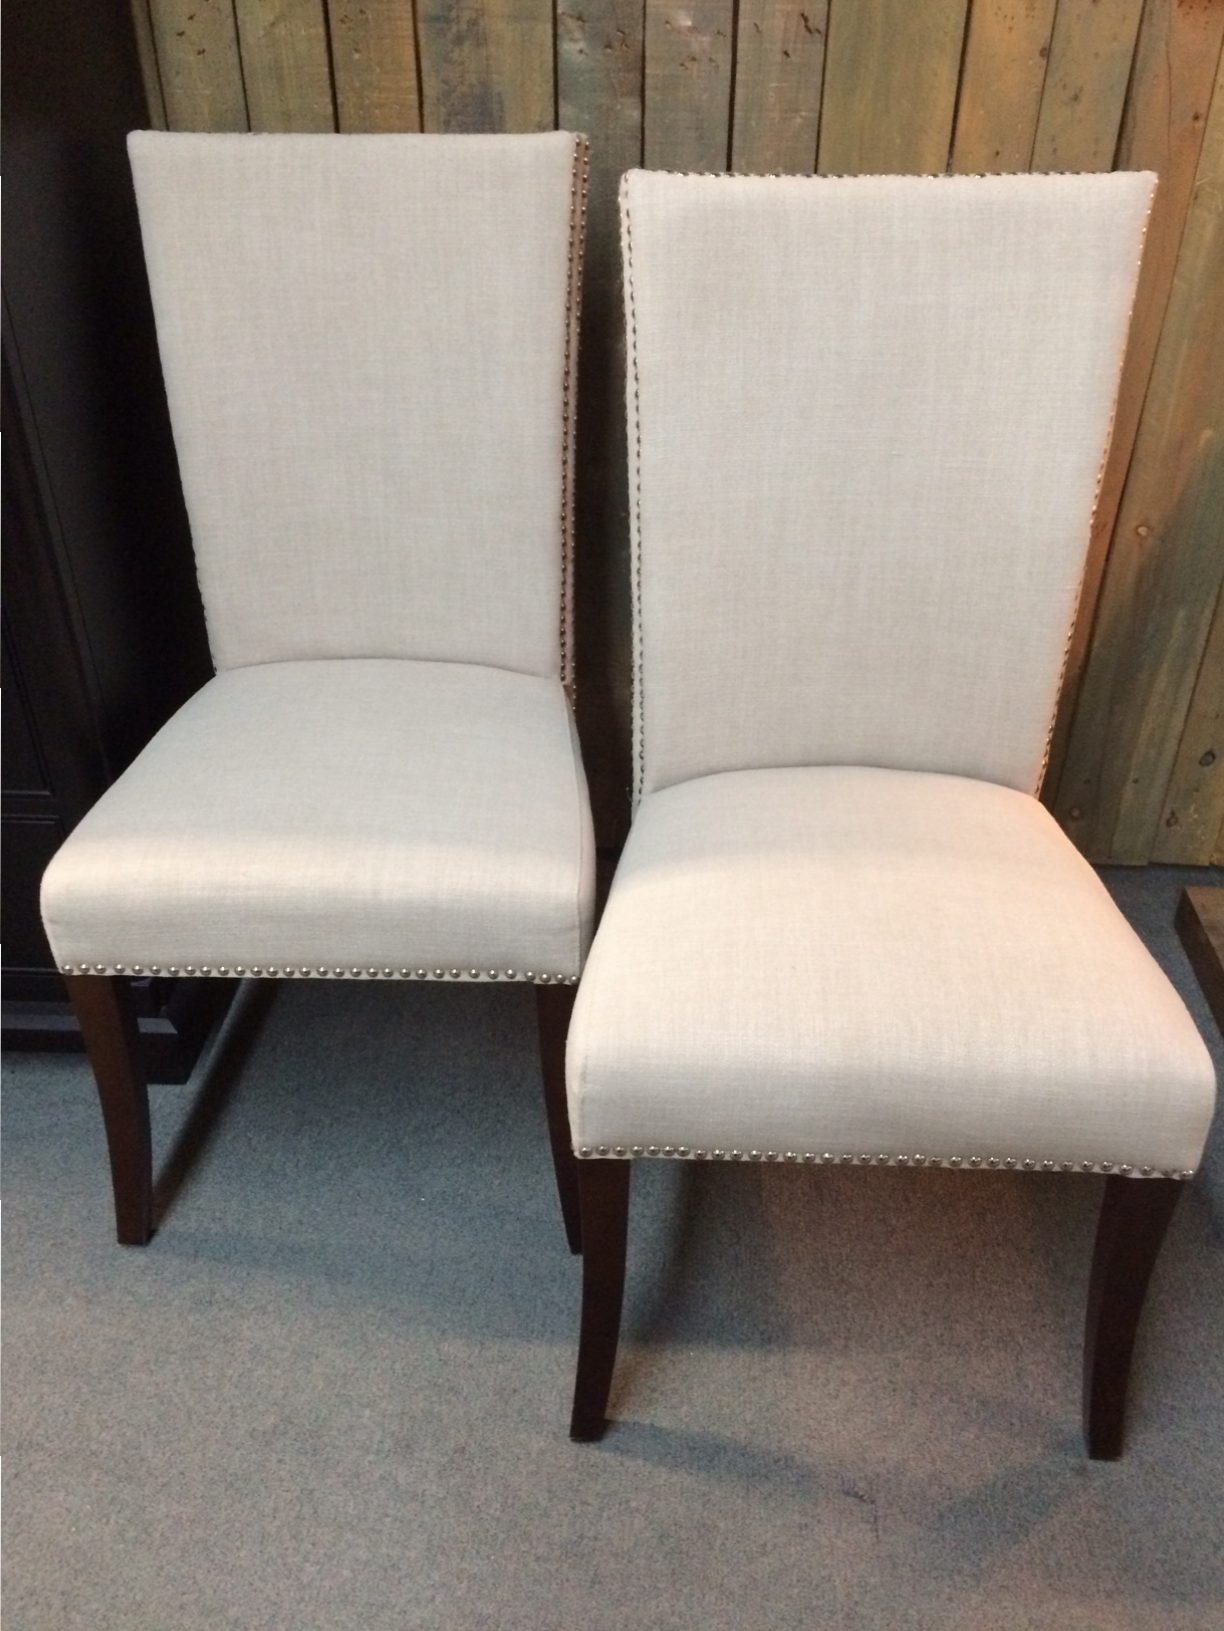 (2) Melissa Upholstered Dining Chairs